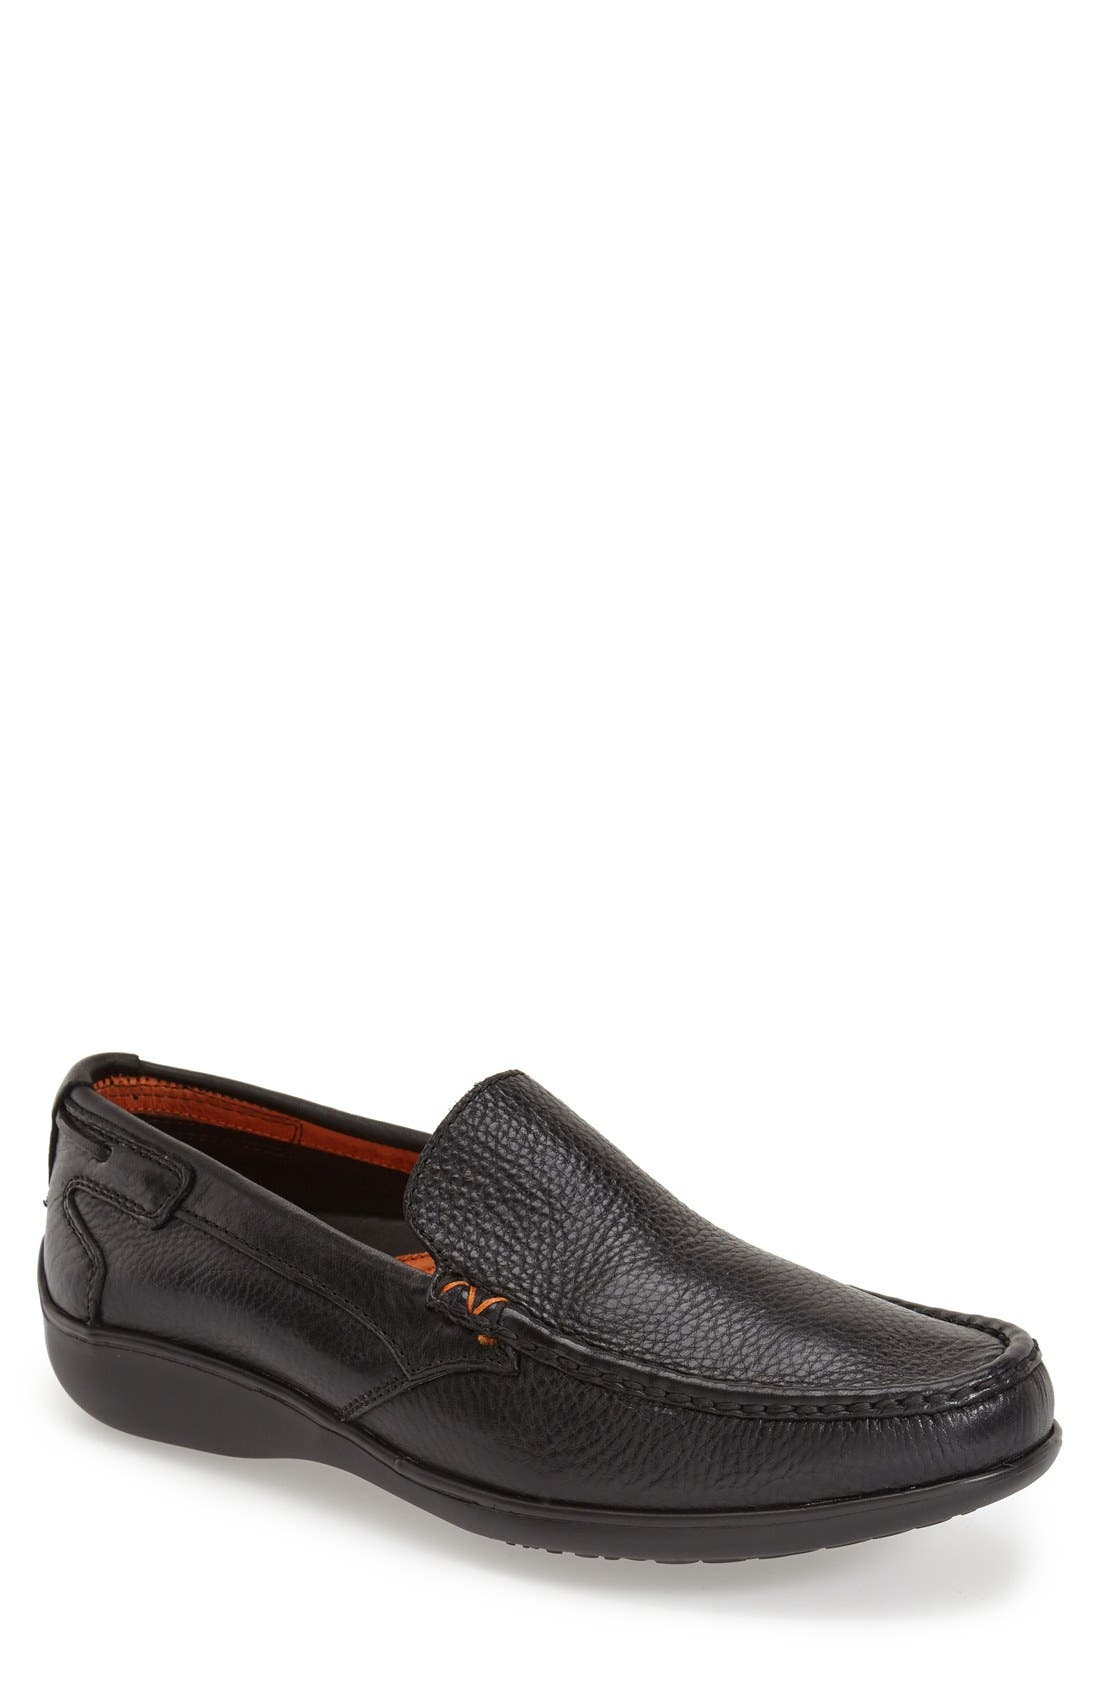 'Sterling' Loafer,                             Main thumbnail 1, color,                             001